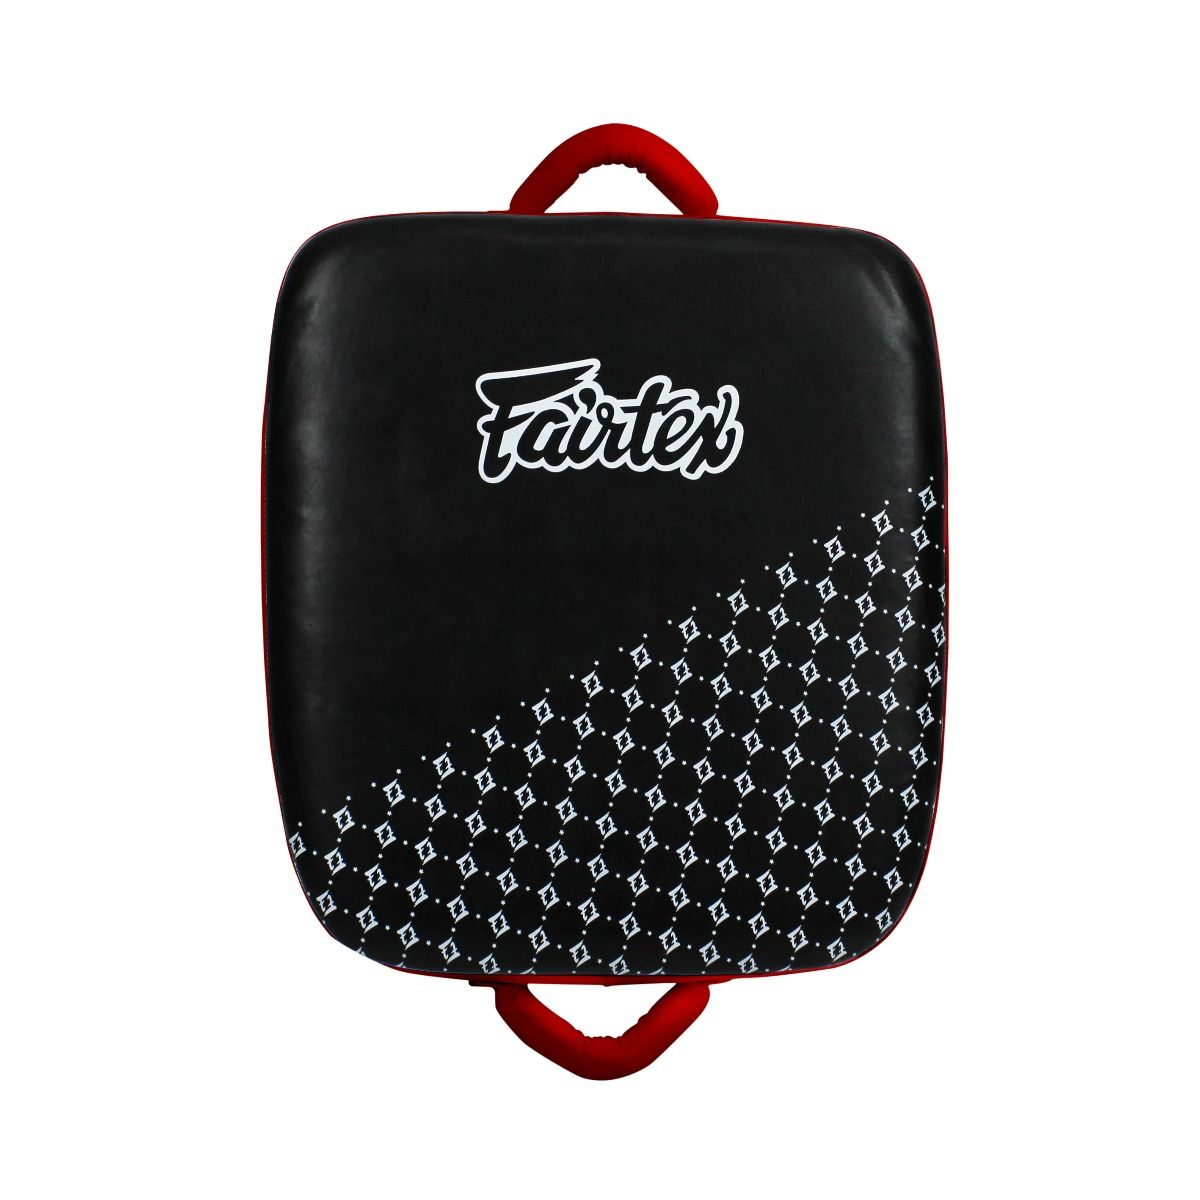 Fairtex LKP1 Leg Kick Pad, A.K.A. The Thai Suitcase for Muay Thai Kickboxing - Fairtex Store